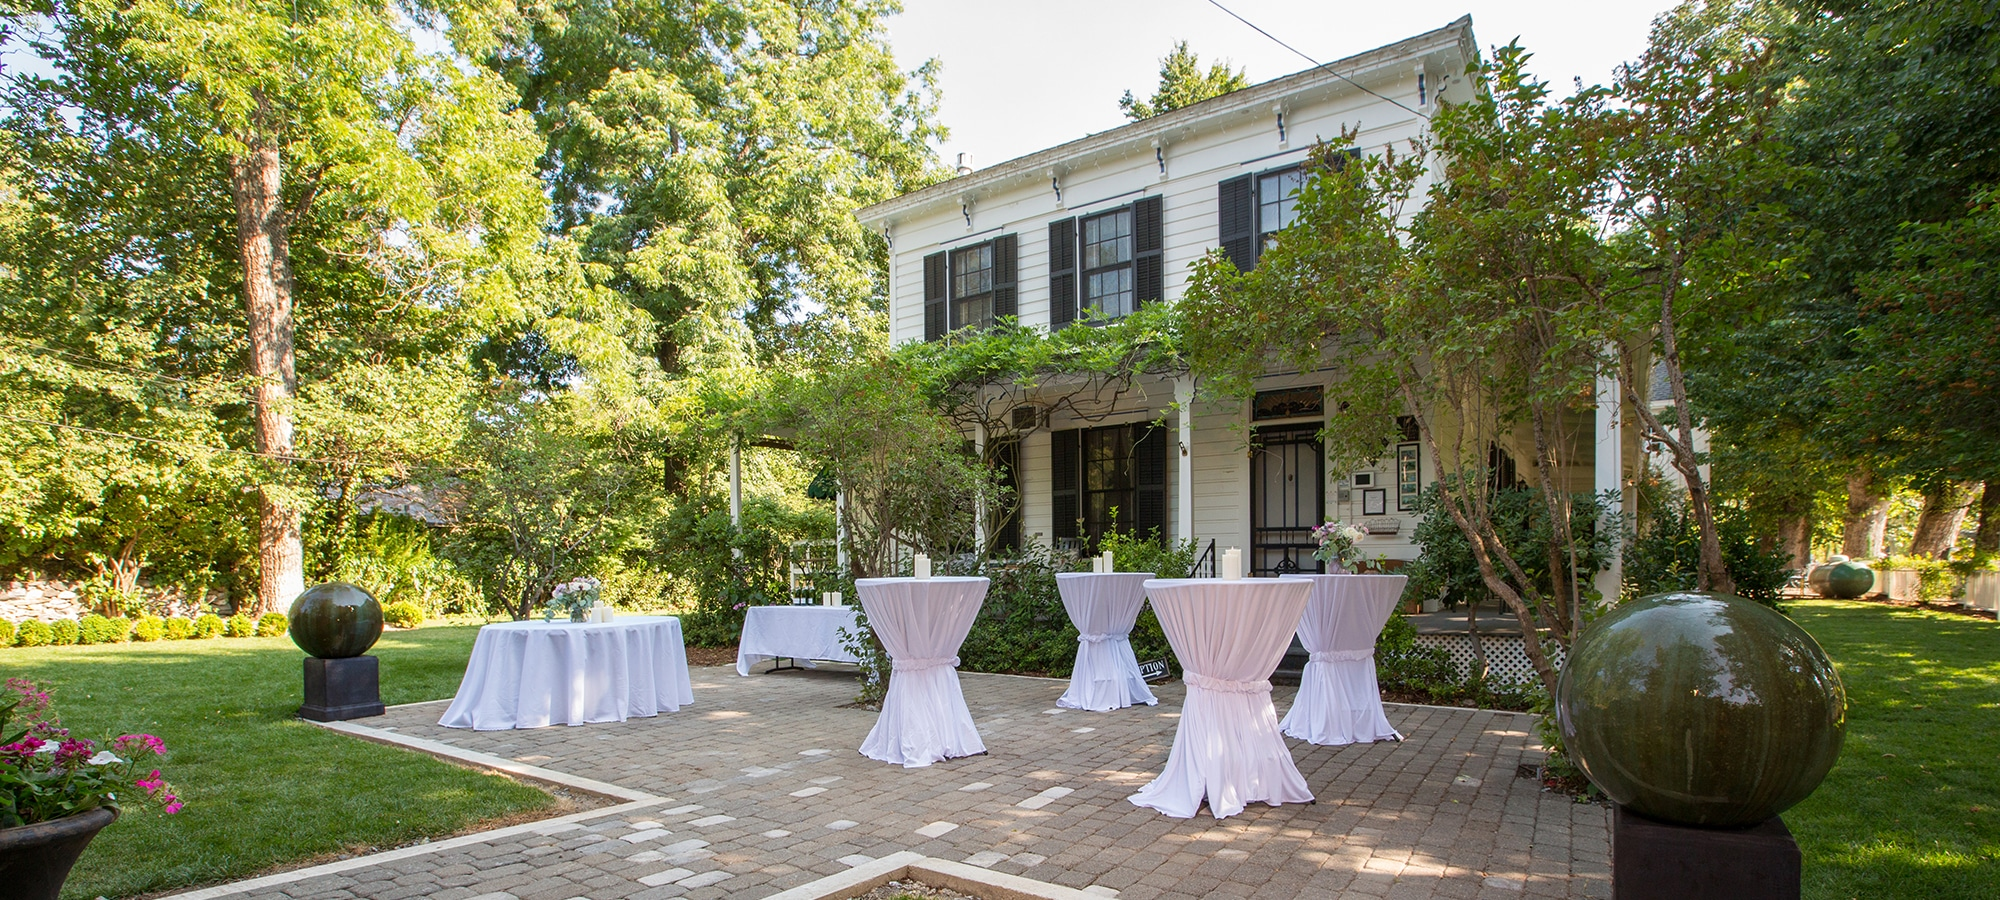 "An outdoor brick patio featuring white round banquet tables, and taller ""standing"" tables with decorative centerpieces. The house's porch area can be seen in the background."